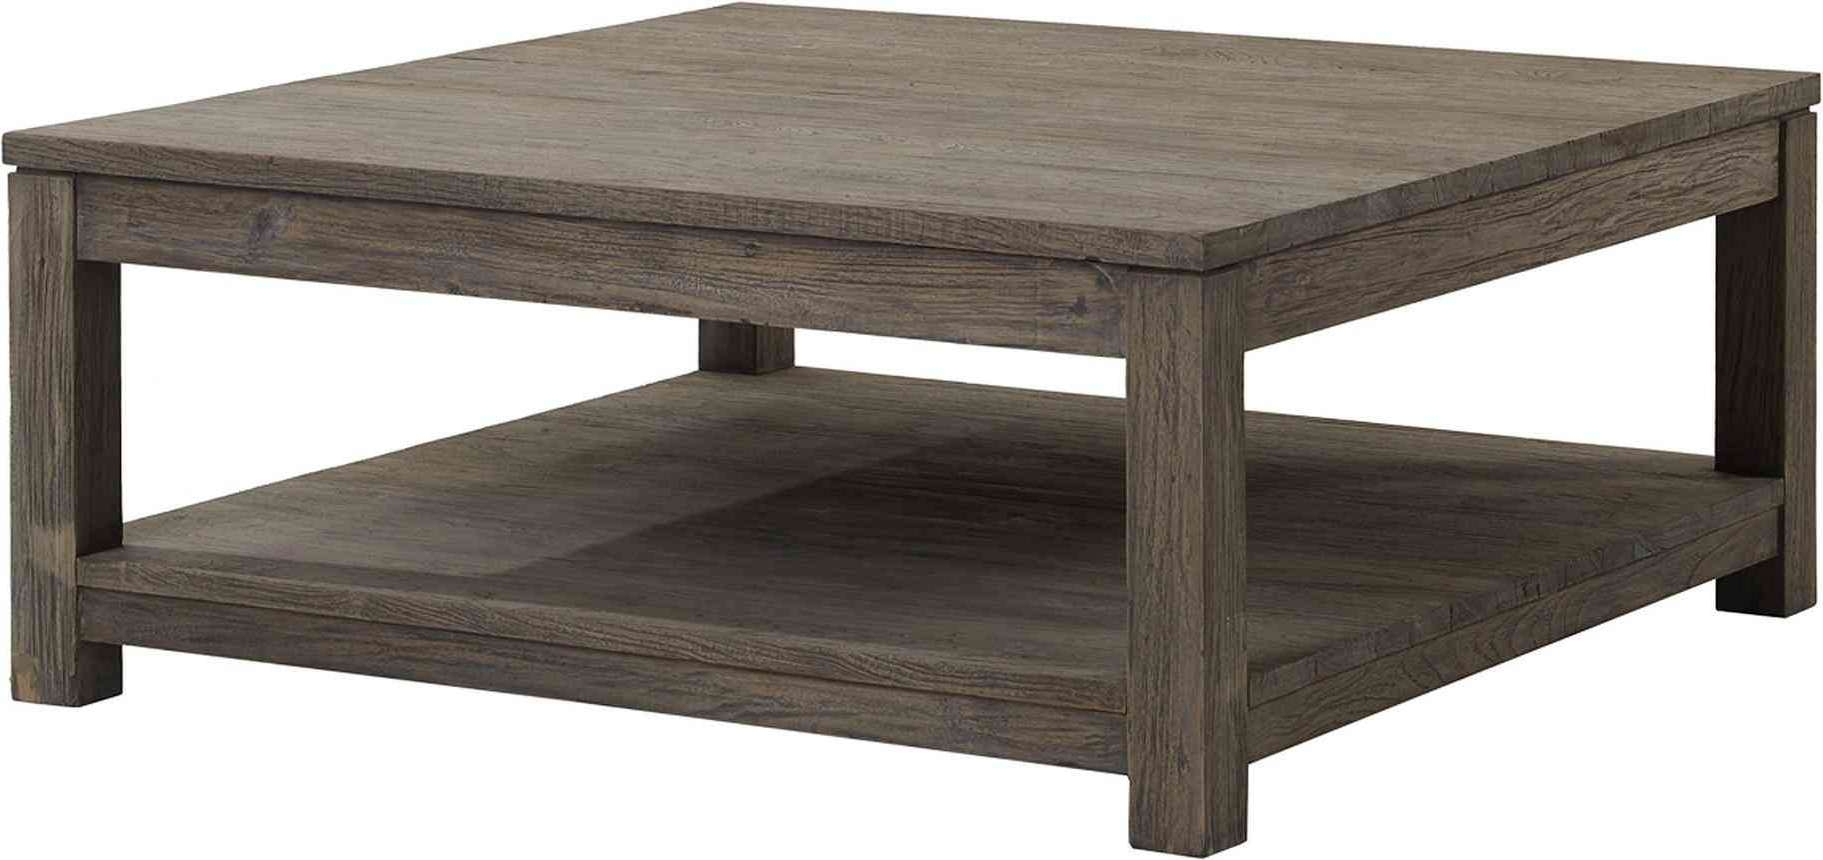 Coffee Tables : Square Wooden Coffee Table With Drawers Rustic Intended For Widely Used Square Wooden Coffee Tables (View 7 of 20)